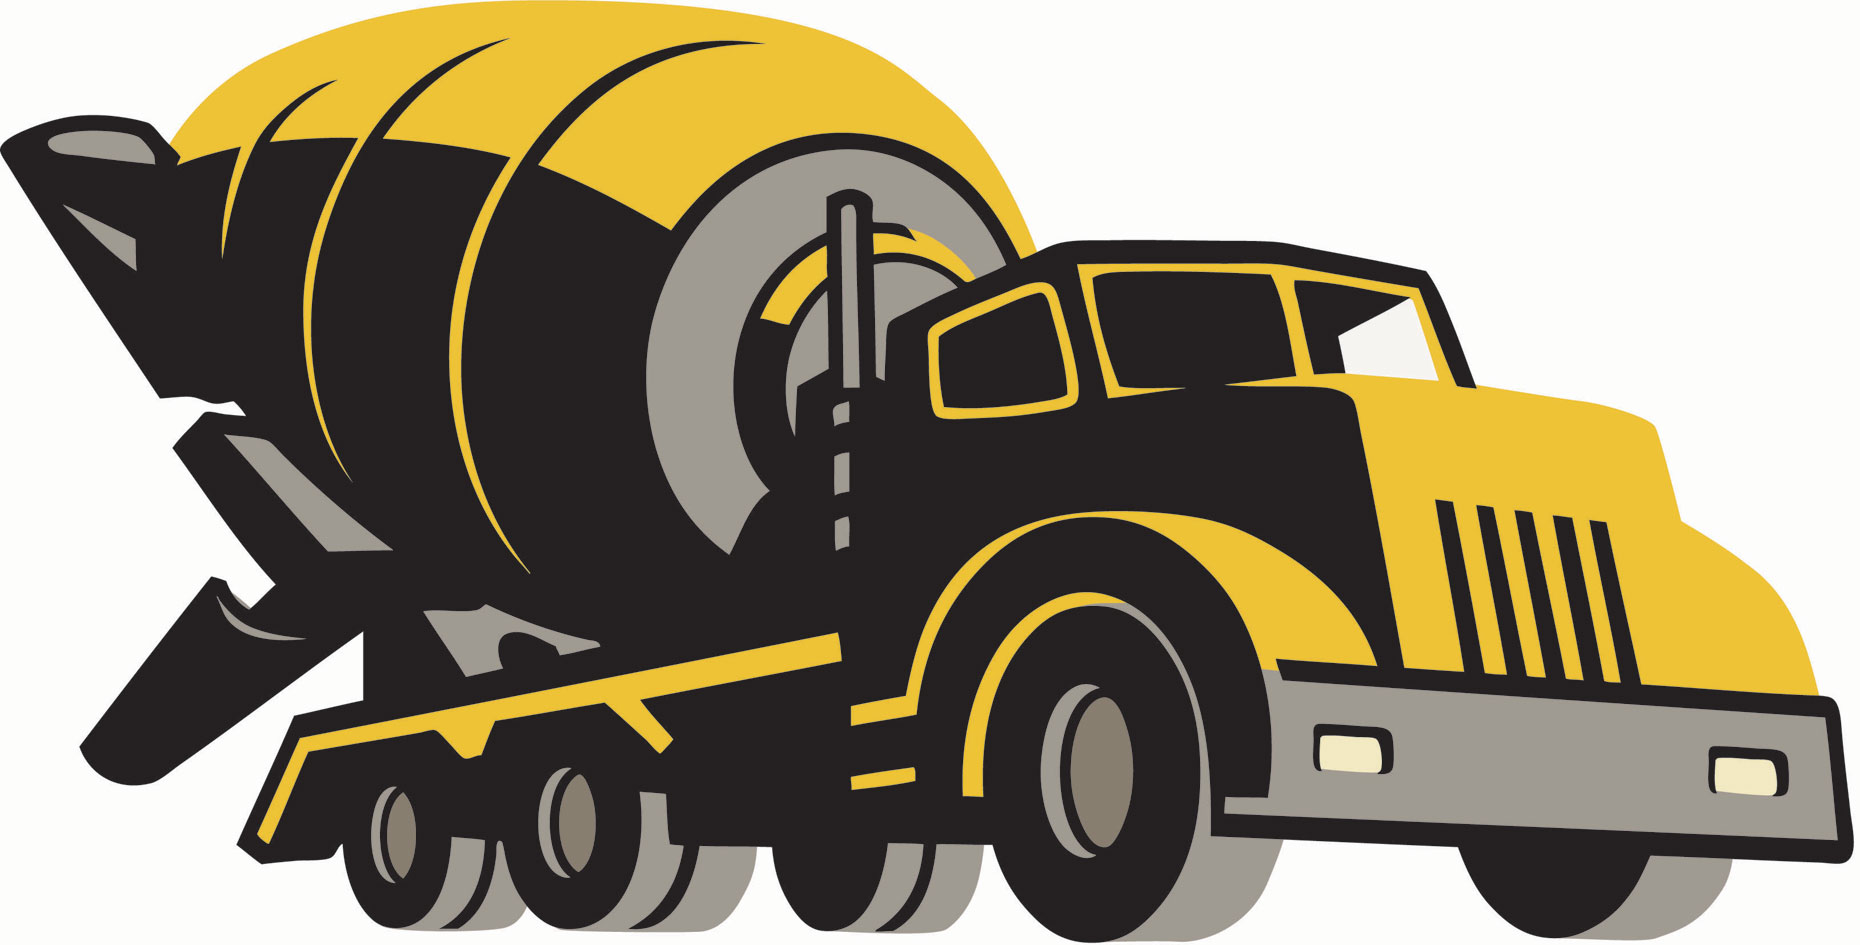 Concrete truck Tom Patric Illustration